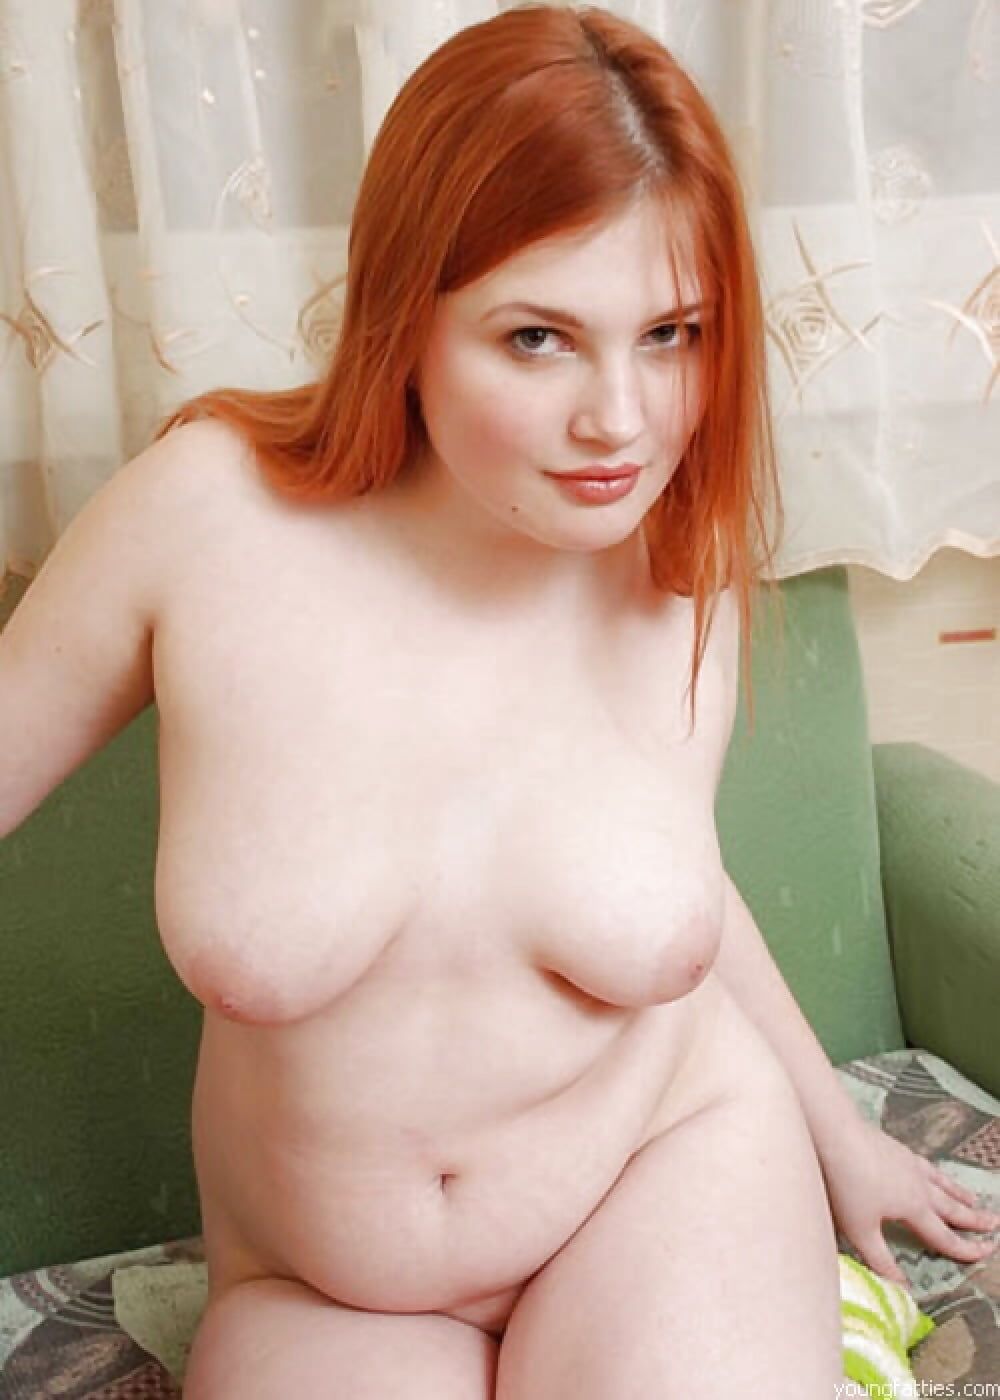 Young fat redhead girl nude — pic 14